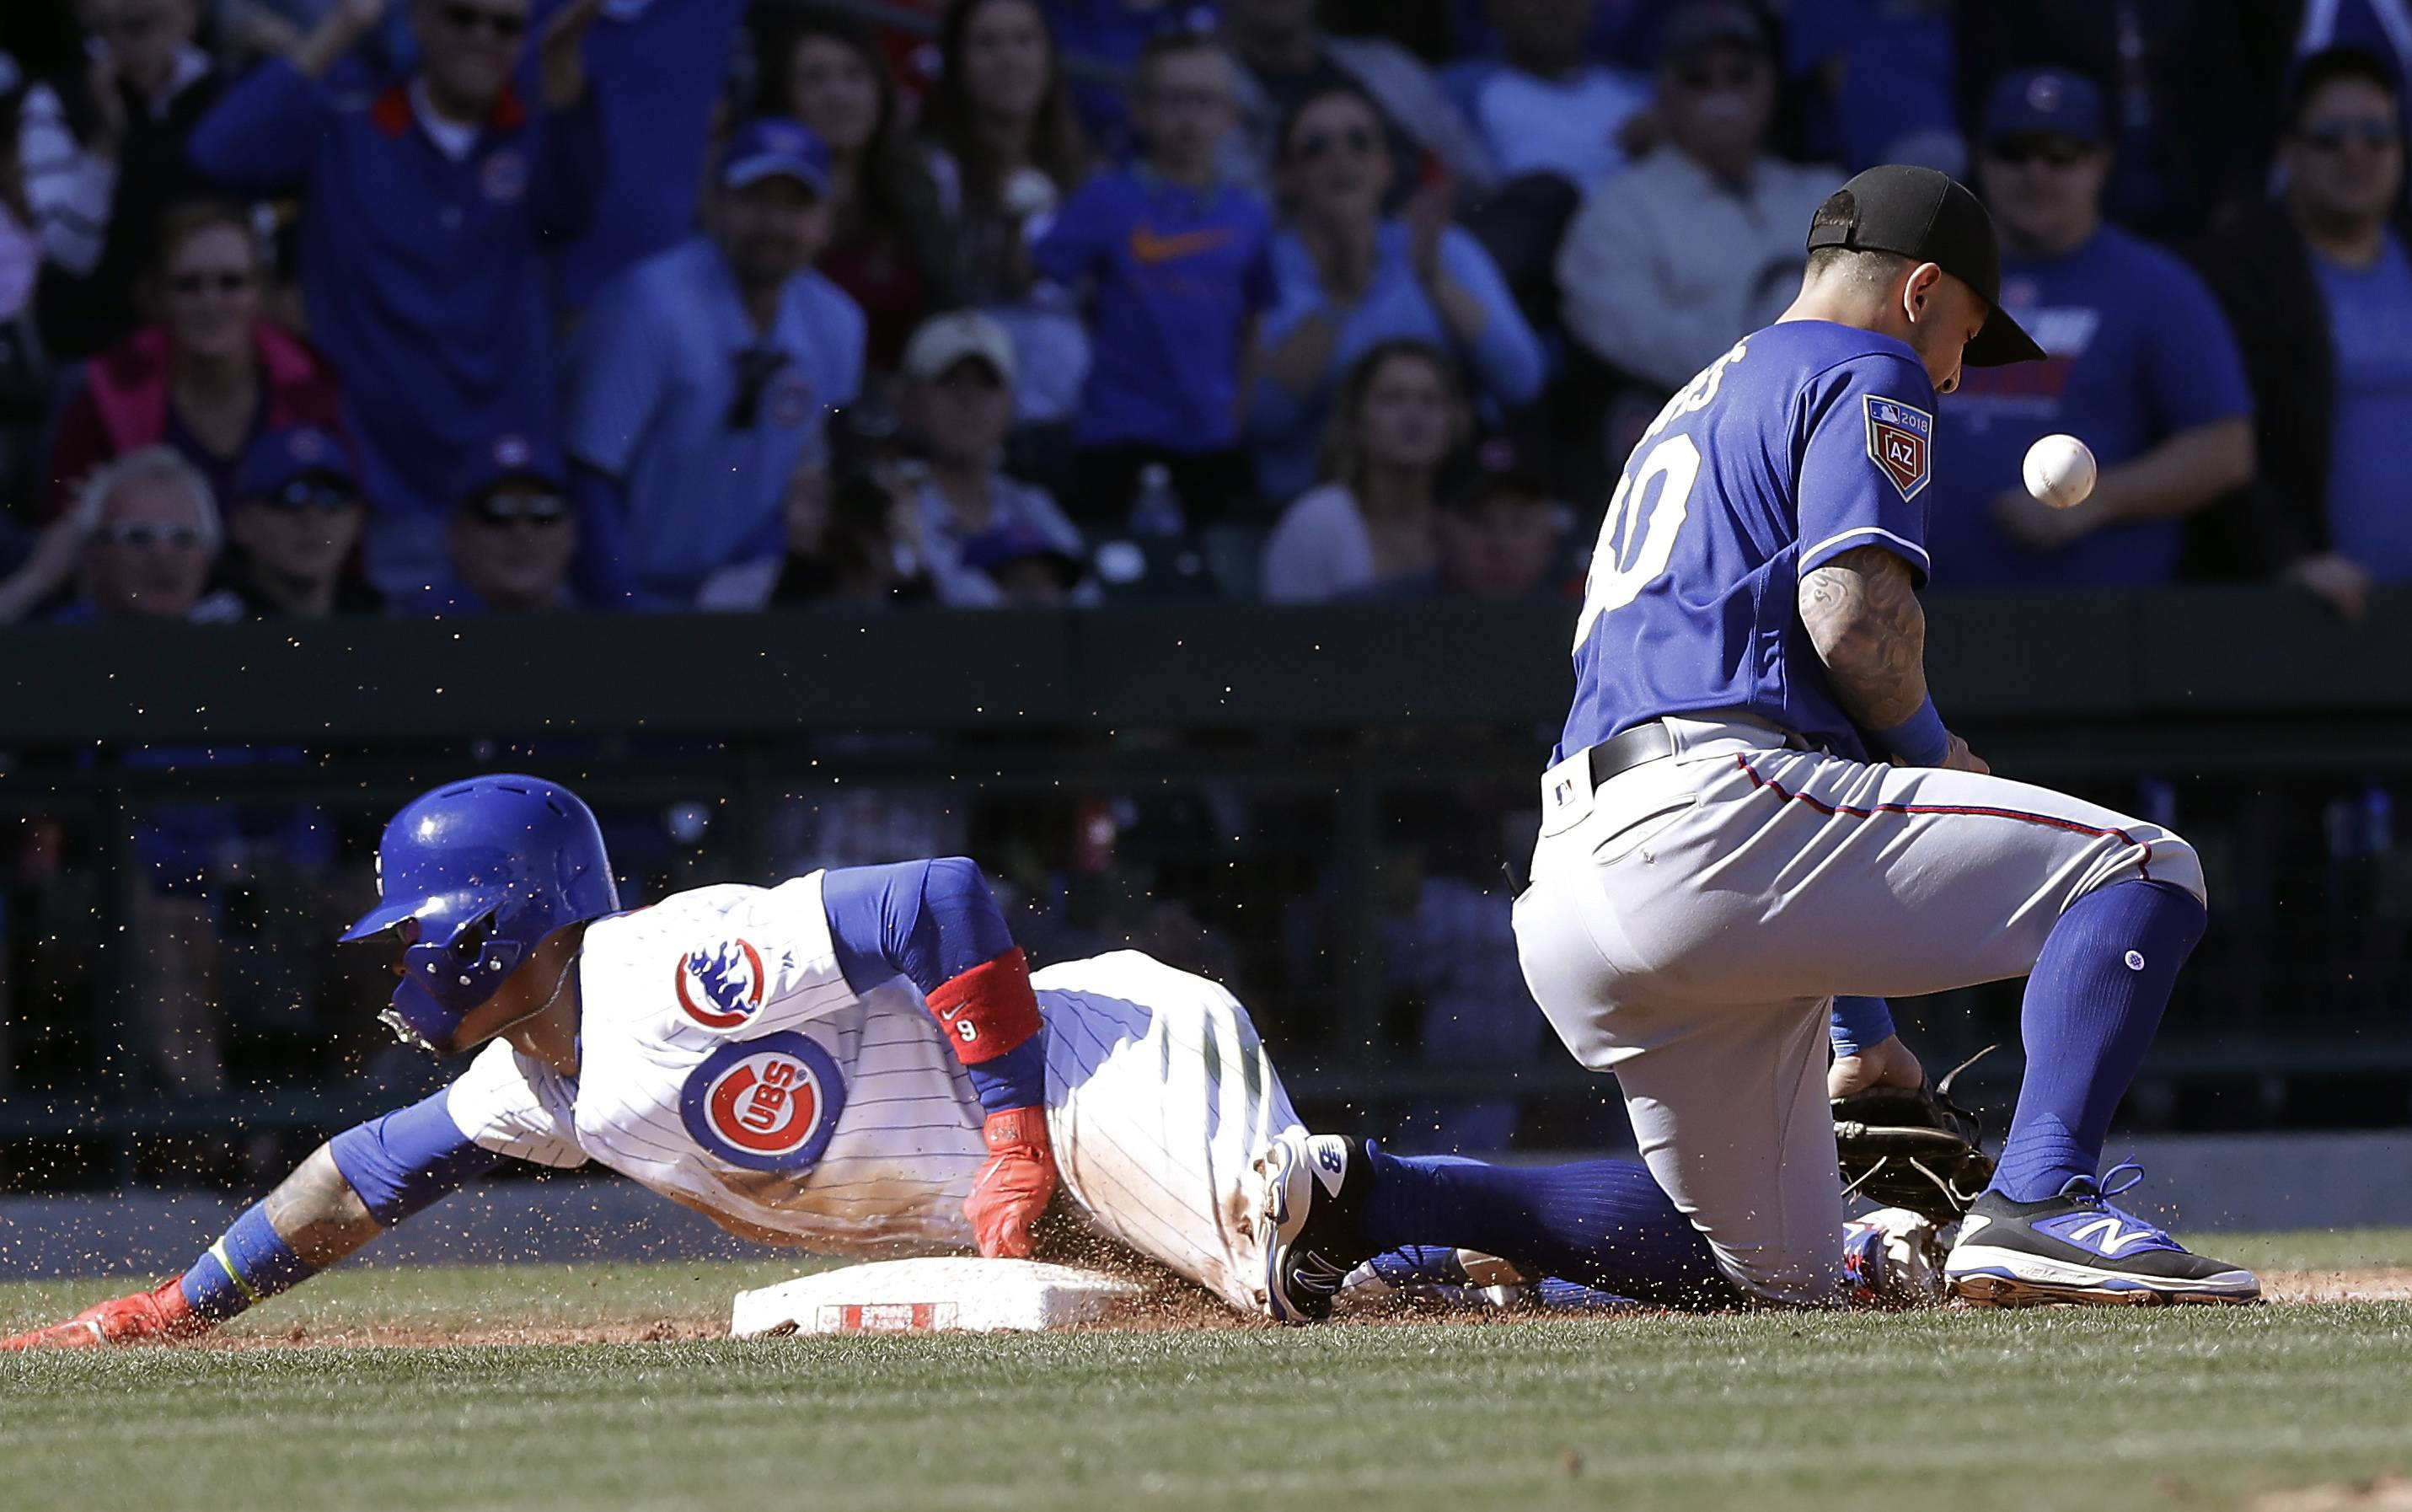 Chicago Cubs look to make a run at smart, assertive baserunning